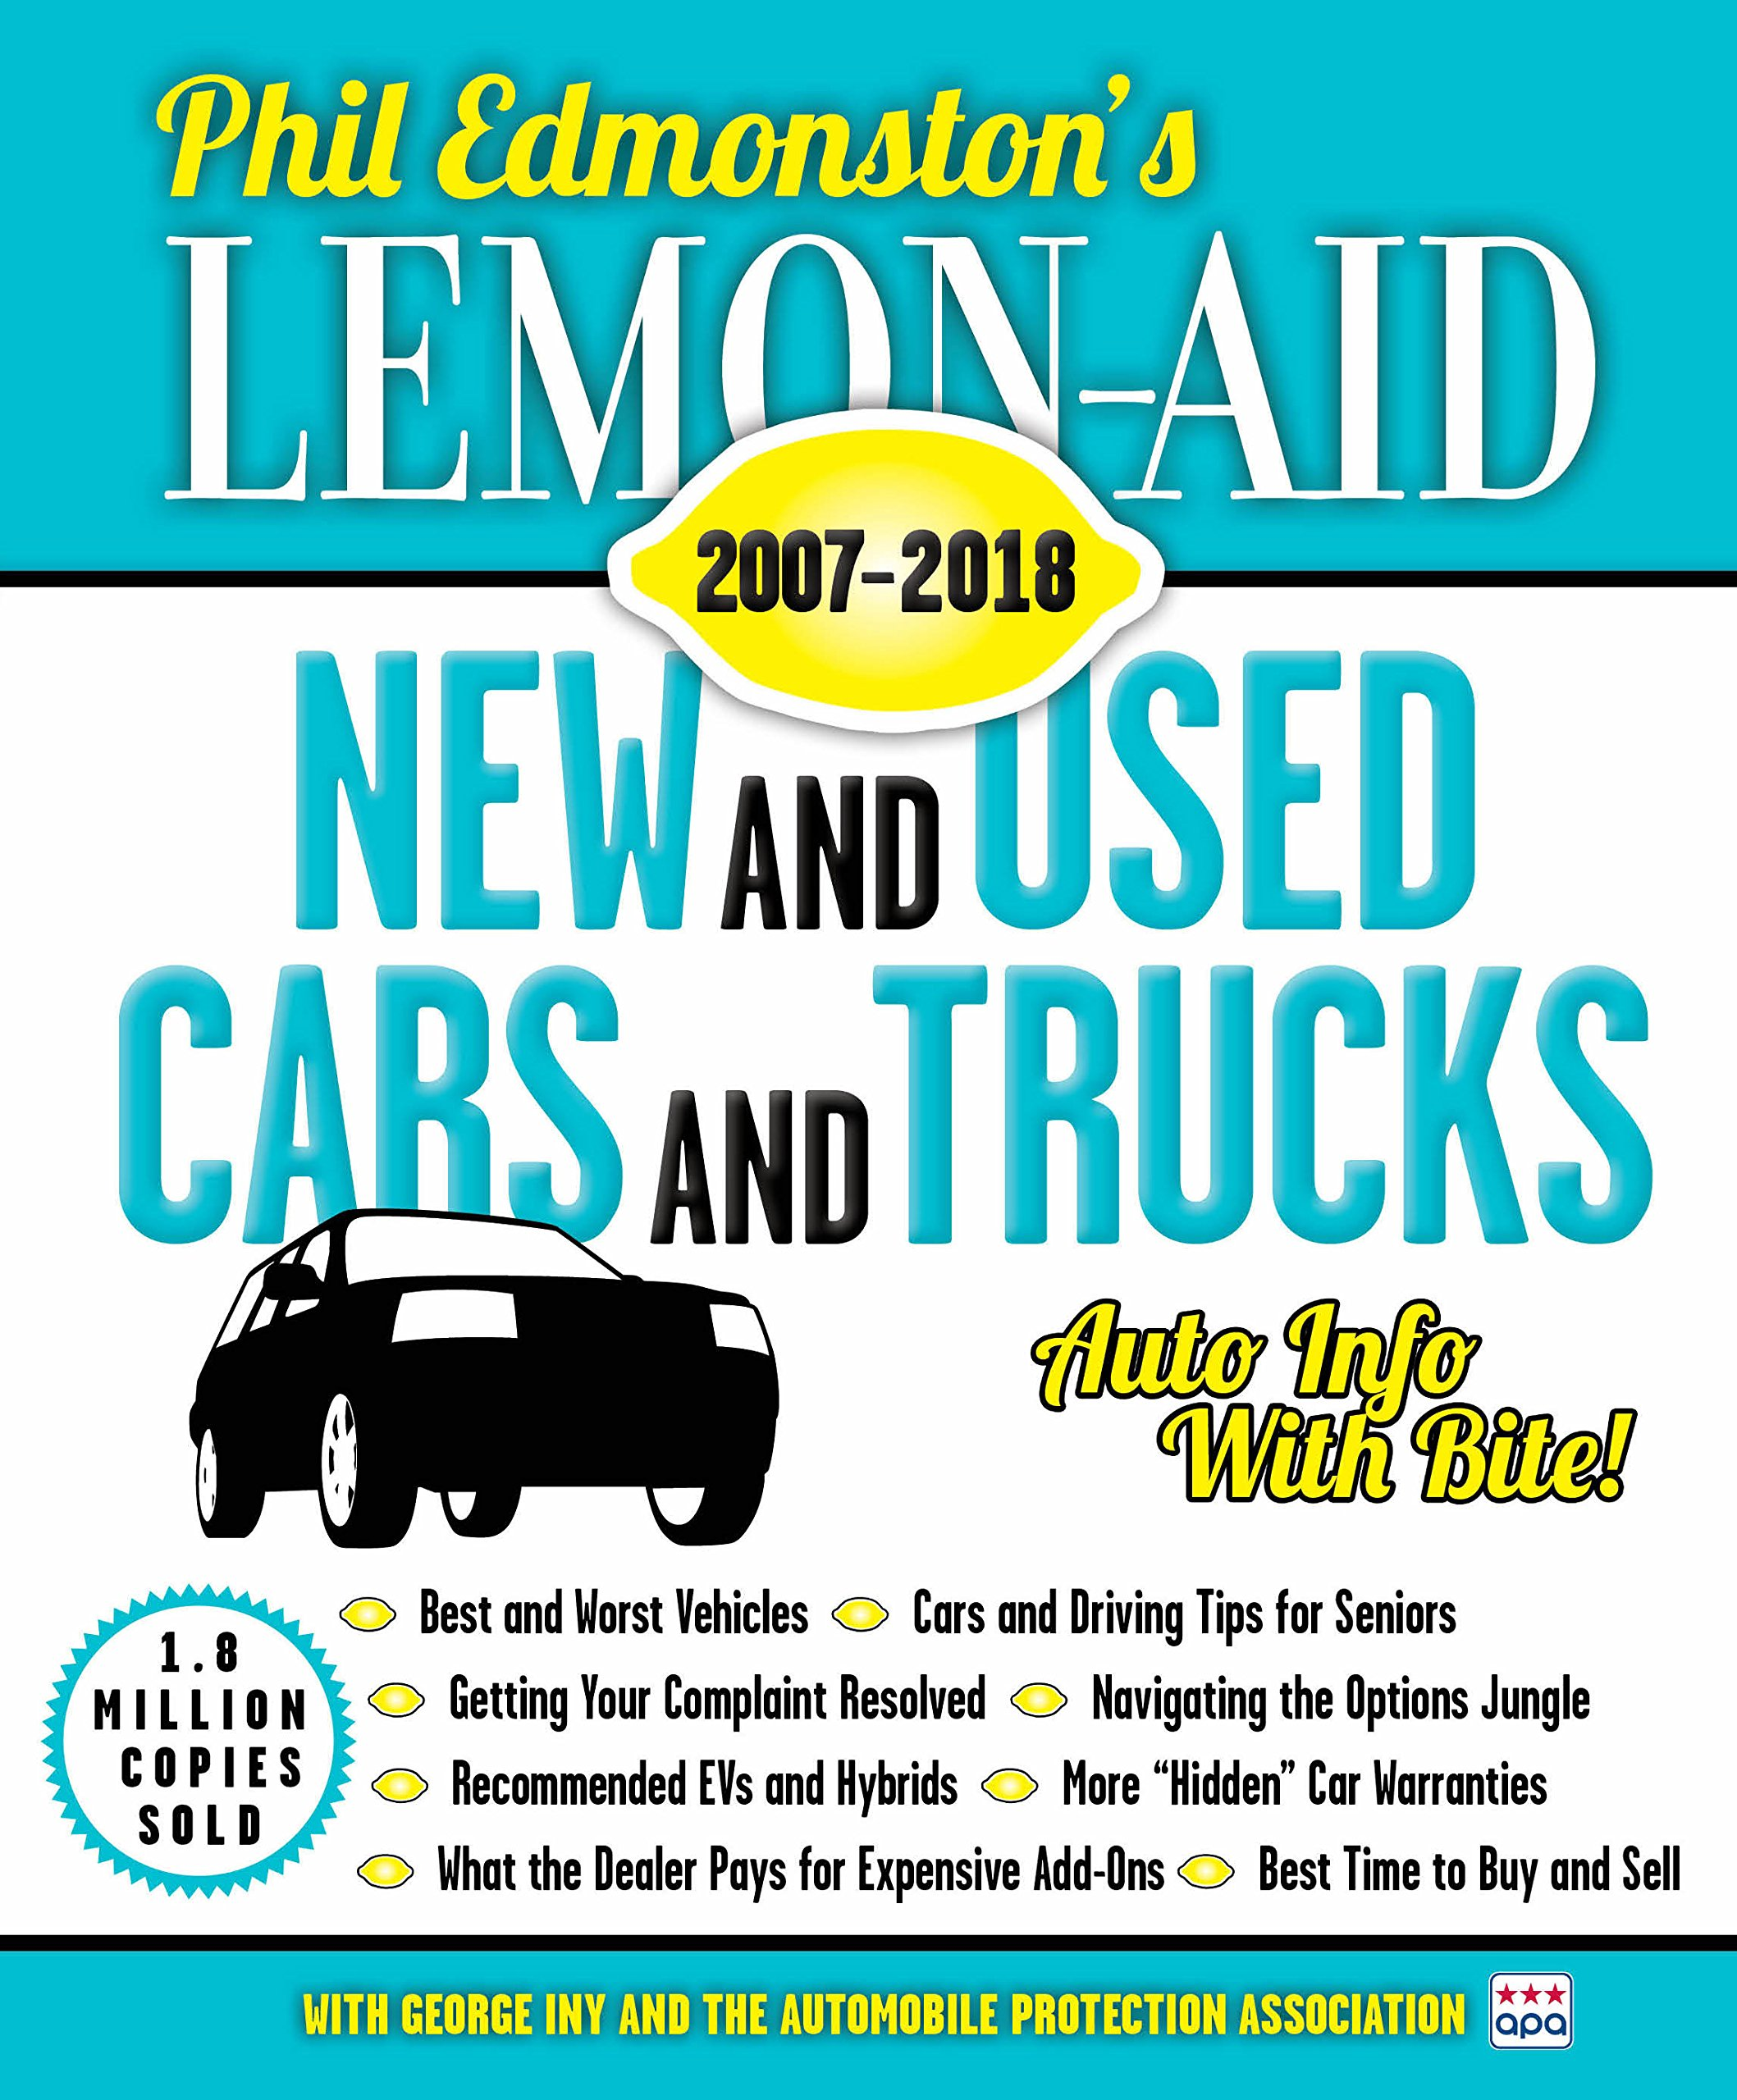 lemon aid new and used cars and trucks 2007 2018 phil edmonston george iny books